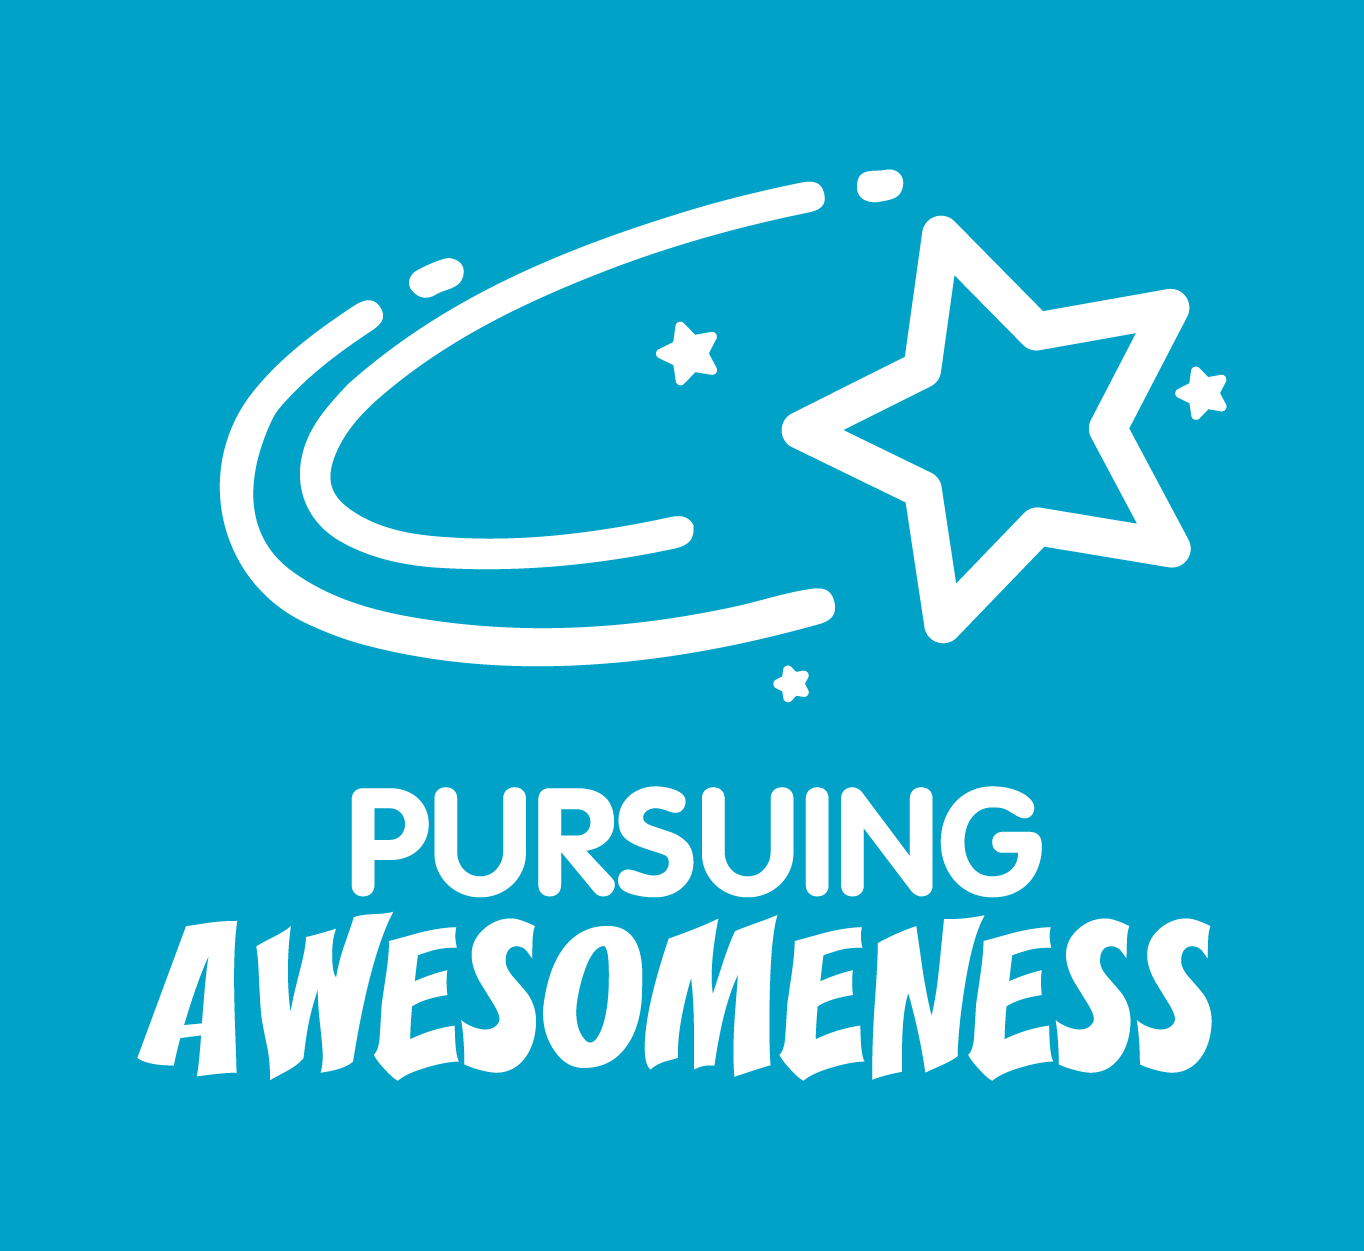 A blue square with a white star that says: Pursuing Awesomeness.